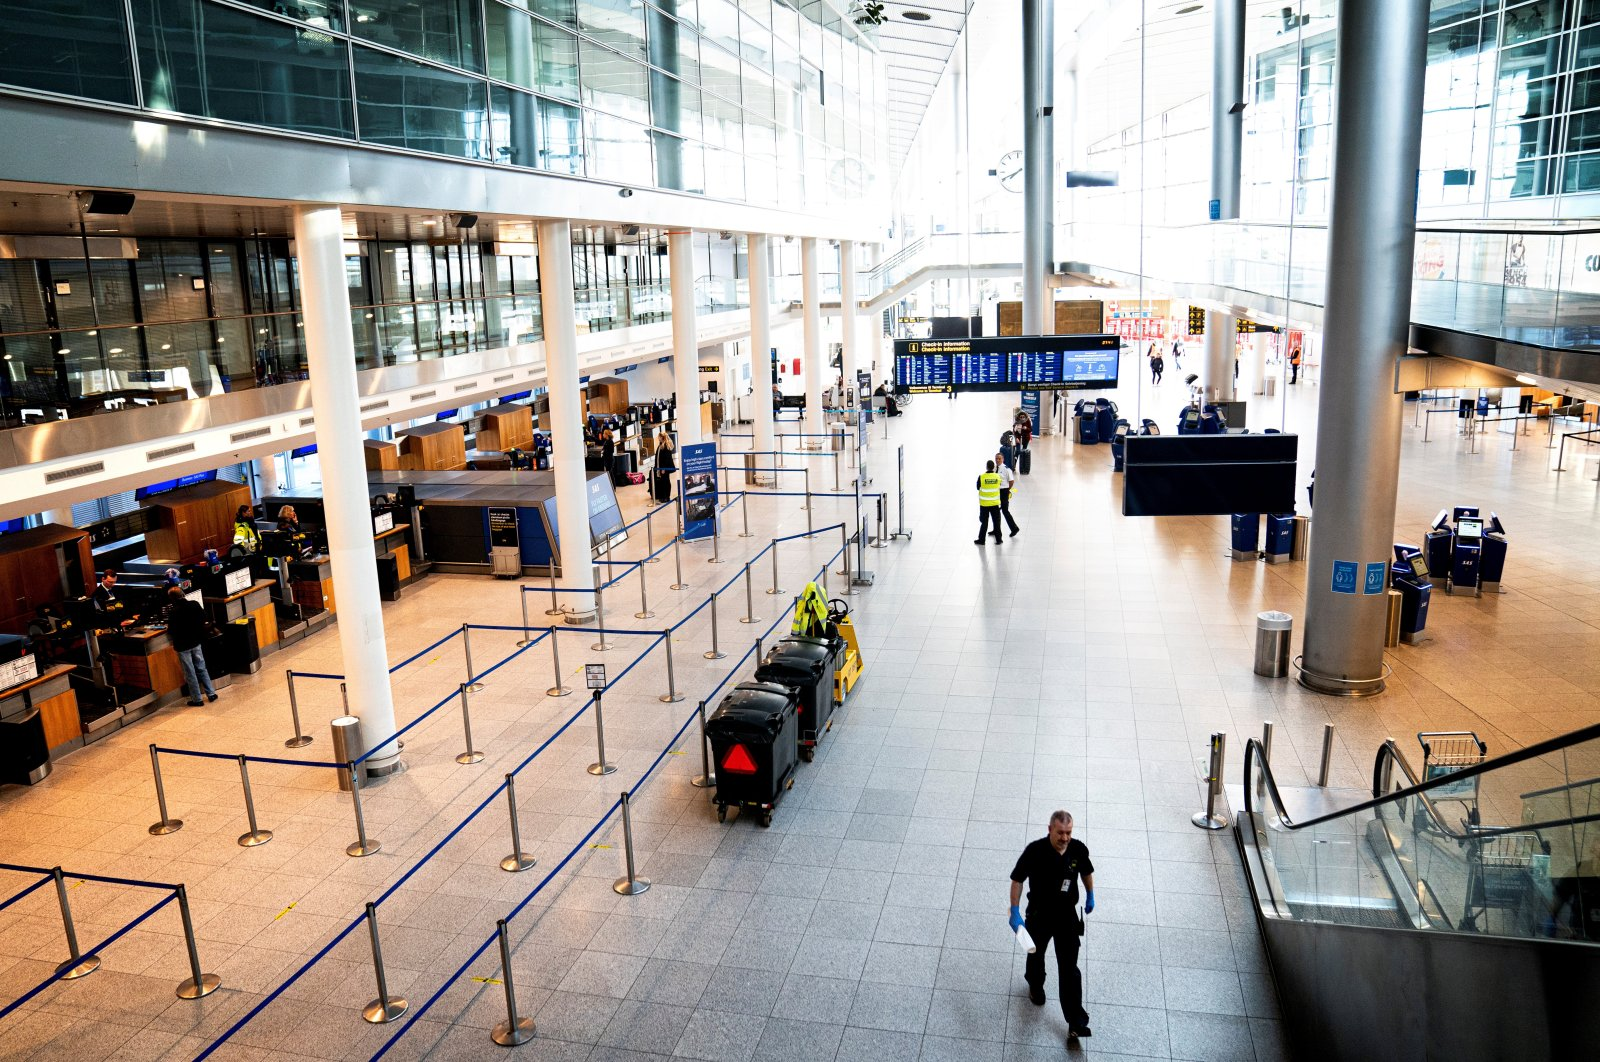 Copenhagen Airport's Terminal 3 hall is seen almost empty following the outbreak of the coronavirus disease after the country's lockdown, in Copenhagen, Denmark, March 24, 2020. (Reuters Photo)